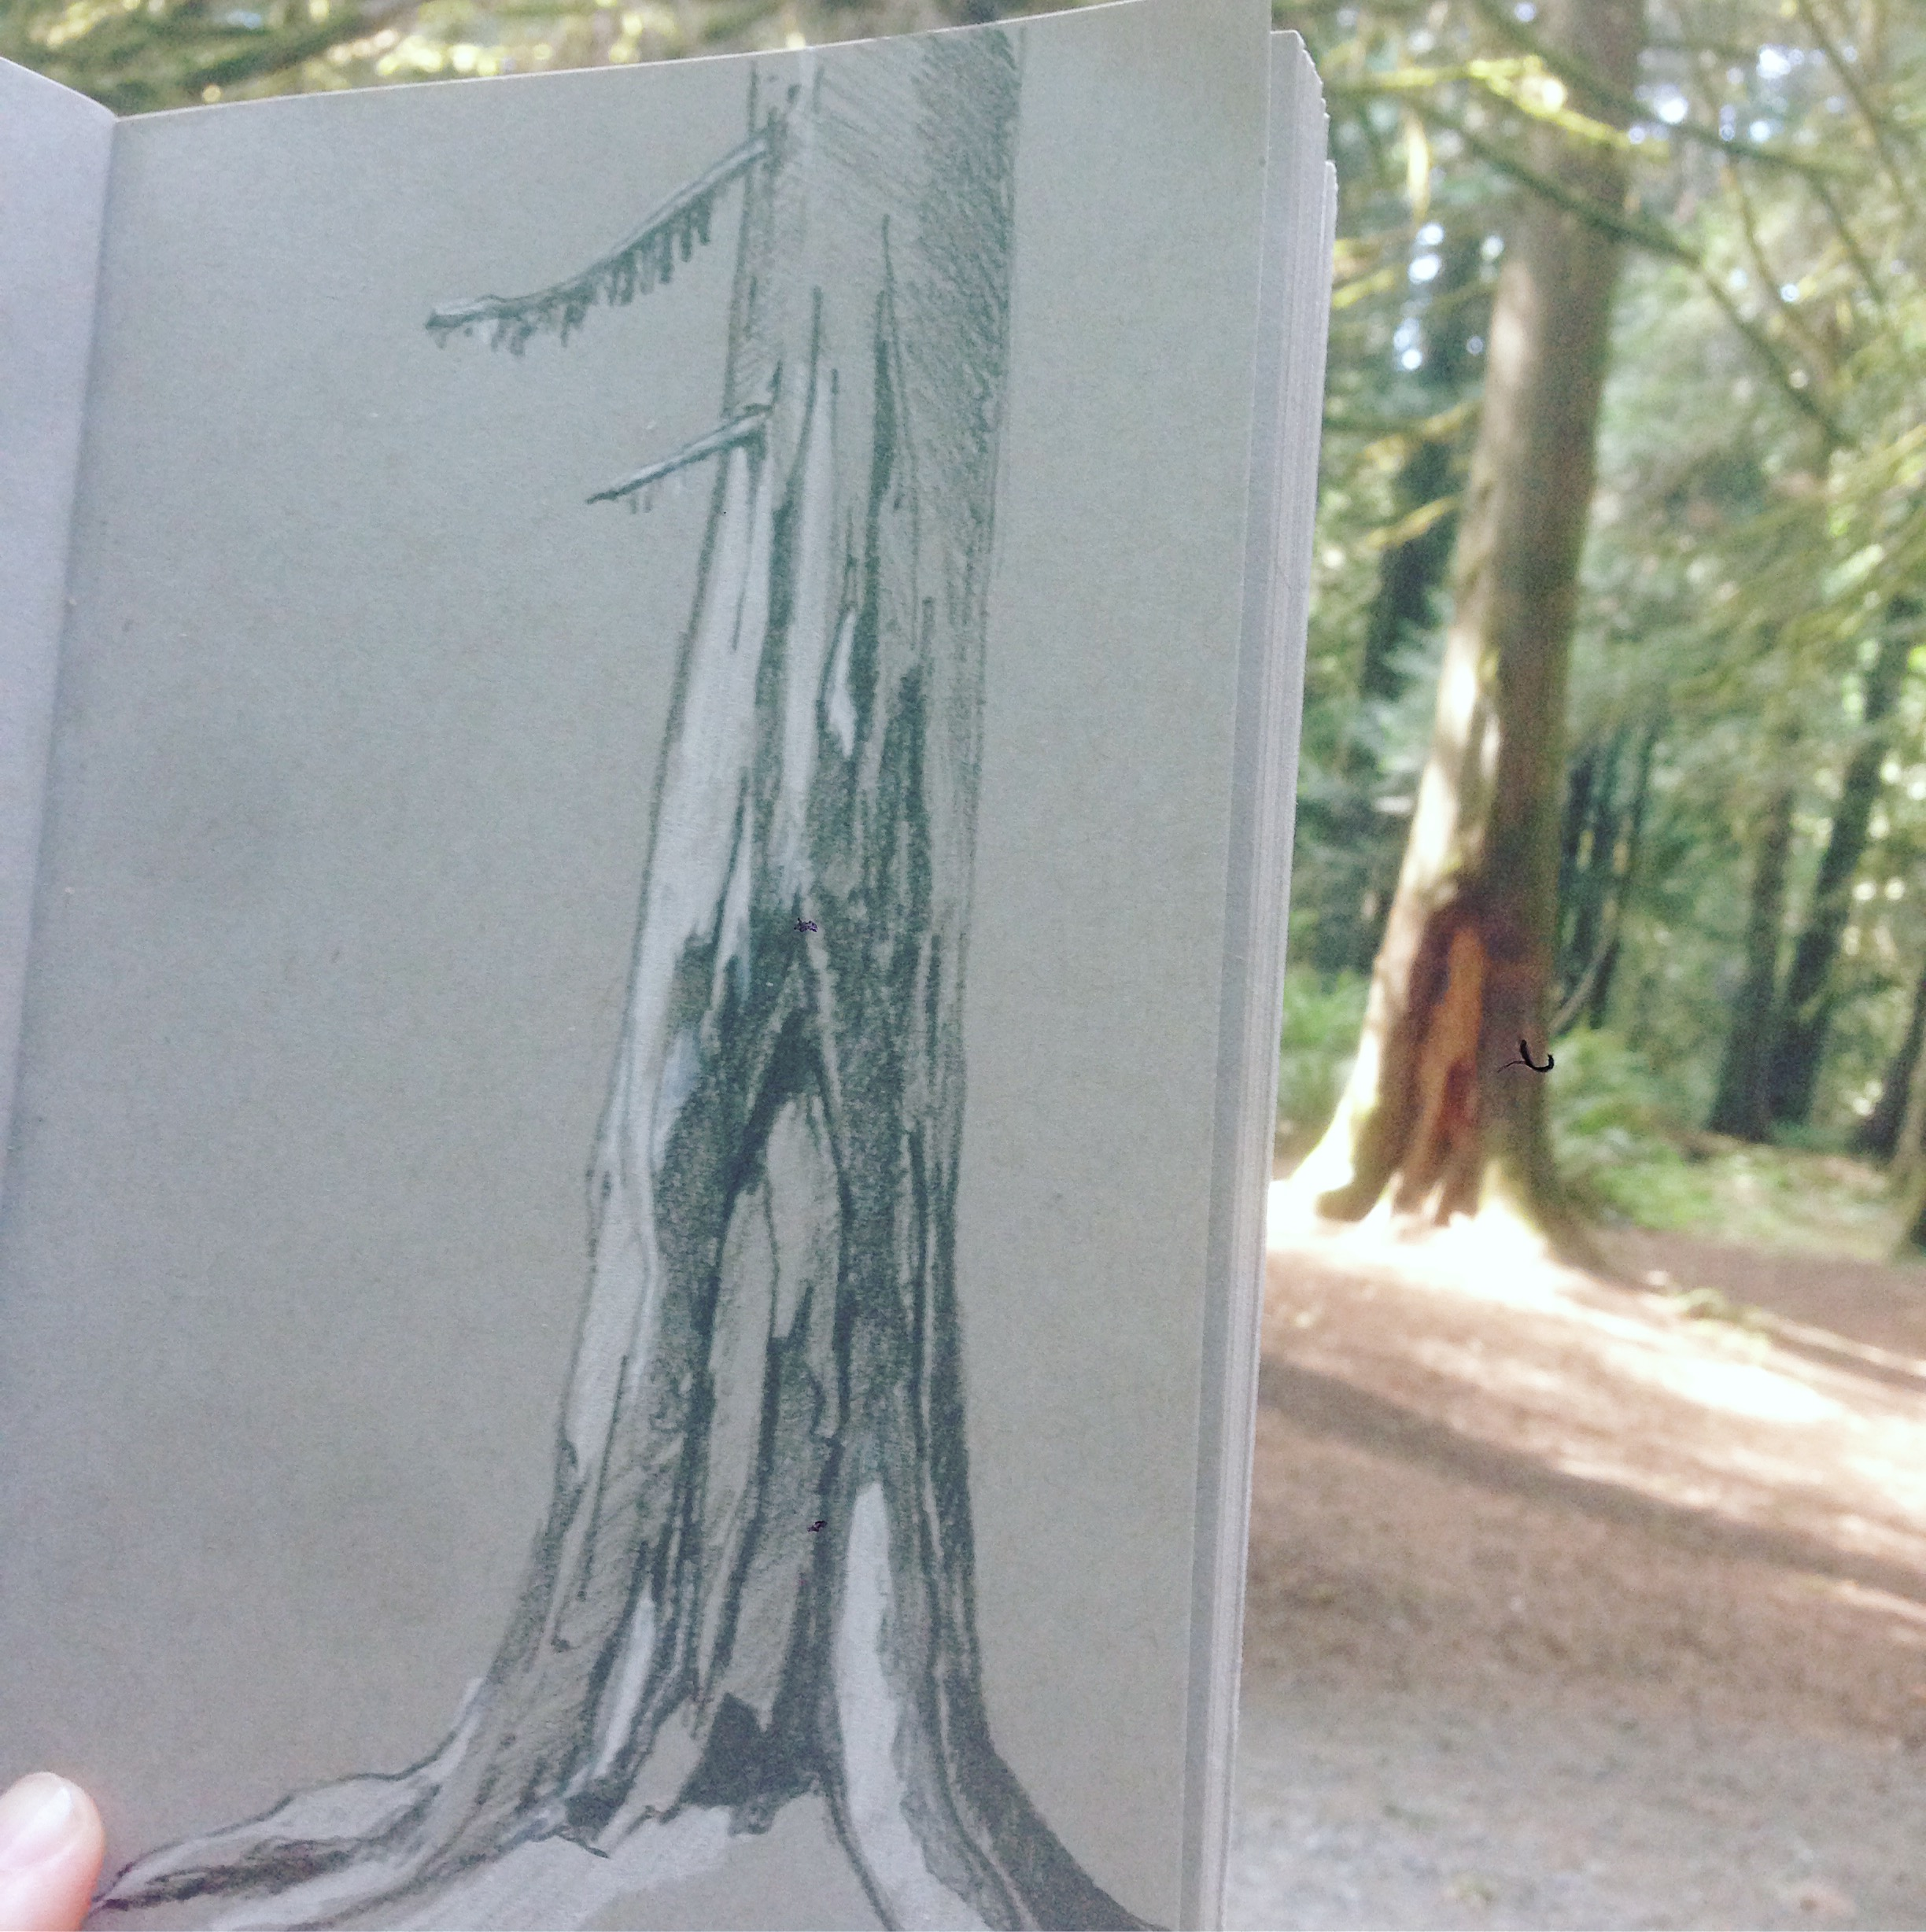 Sketching trees while camping.